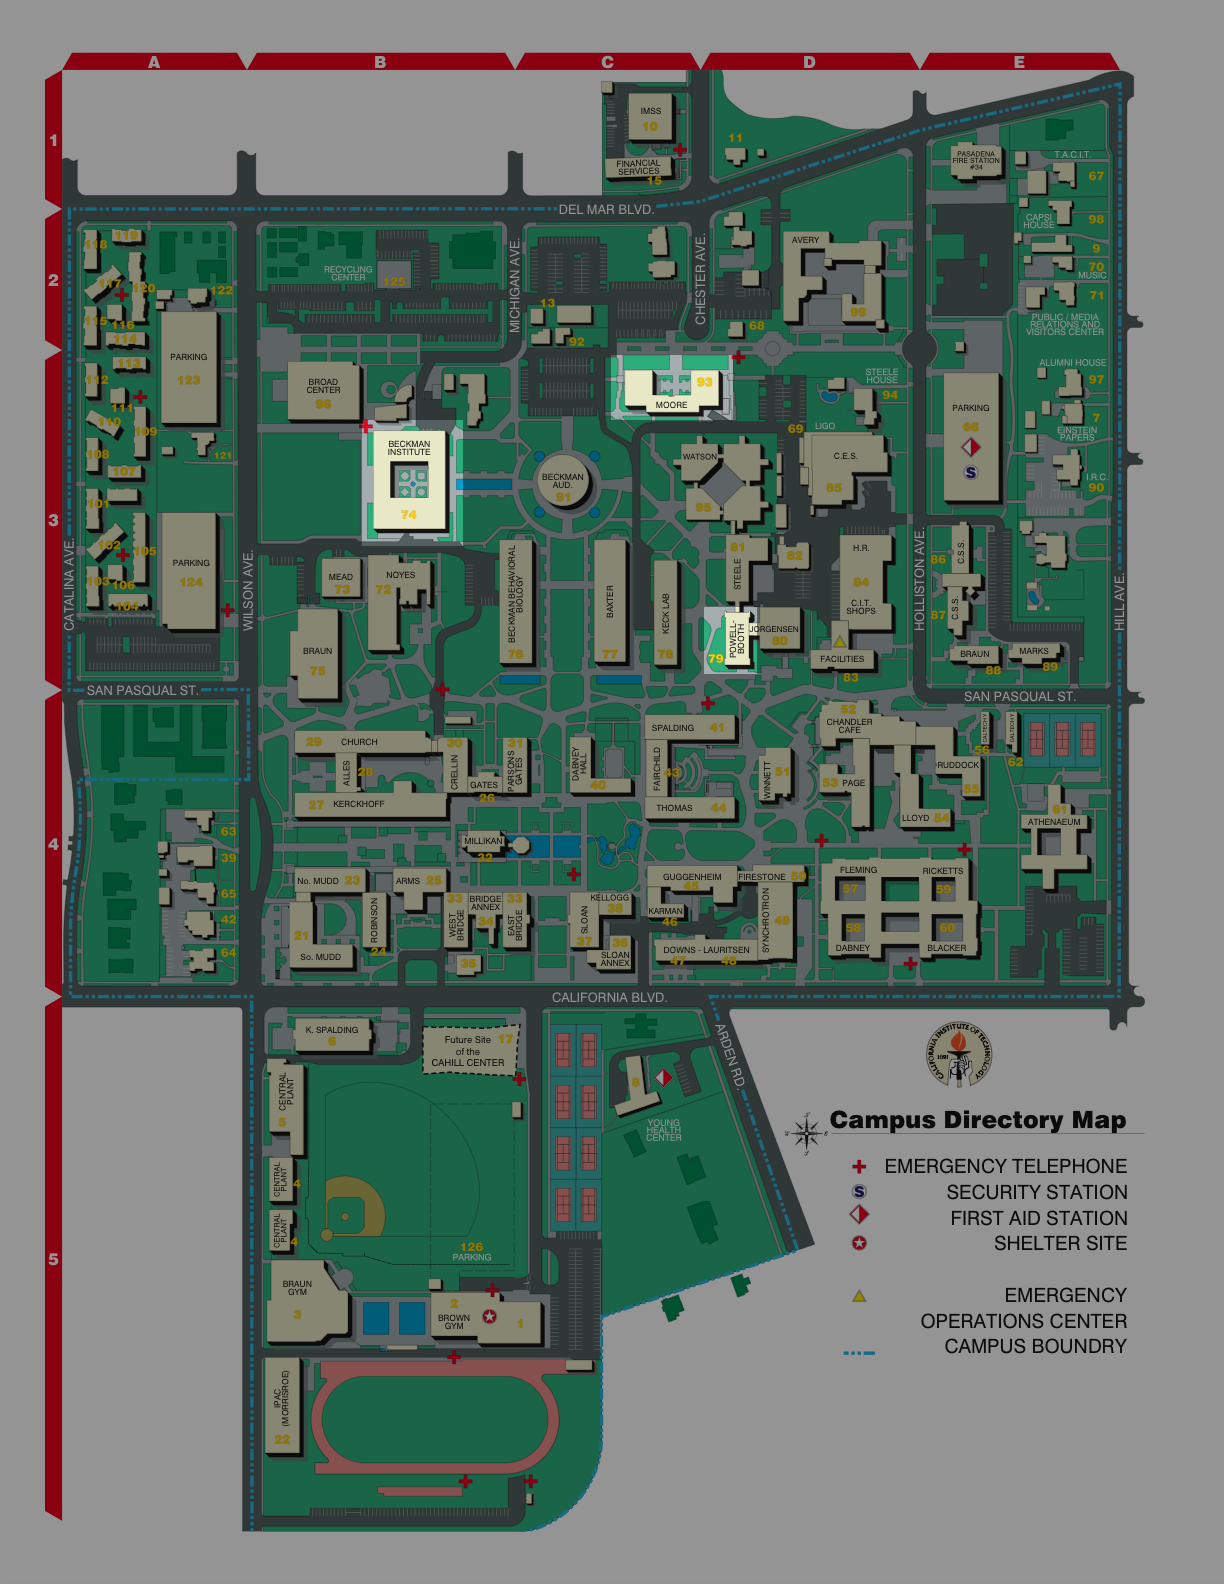 SciPy2008 : hotel_travel on spalding campus map, hawaii campus map, ut brownsville campus map, ucla campus map, ge campus map, university of california campus map, oxford campus map, university of chicago campus map, california institute of technology campus map, del mar college west campus map, fermilab campus map, usc campus map, csu east bay campus map, university of toronto campus map, university of maryland campus map, google campus map, university of virginia campus map, tech campus map, pasadena campus map, university college london campus map,